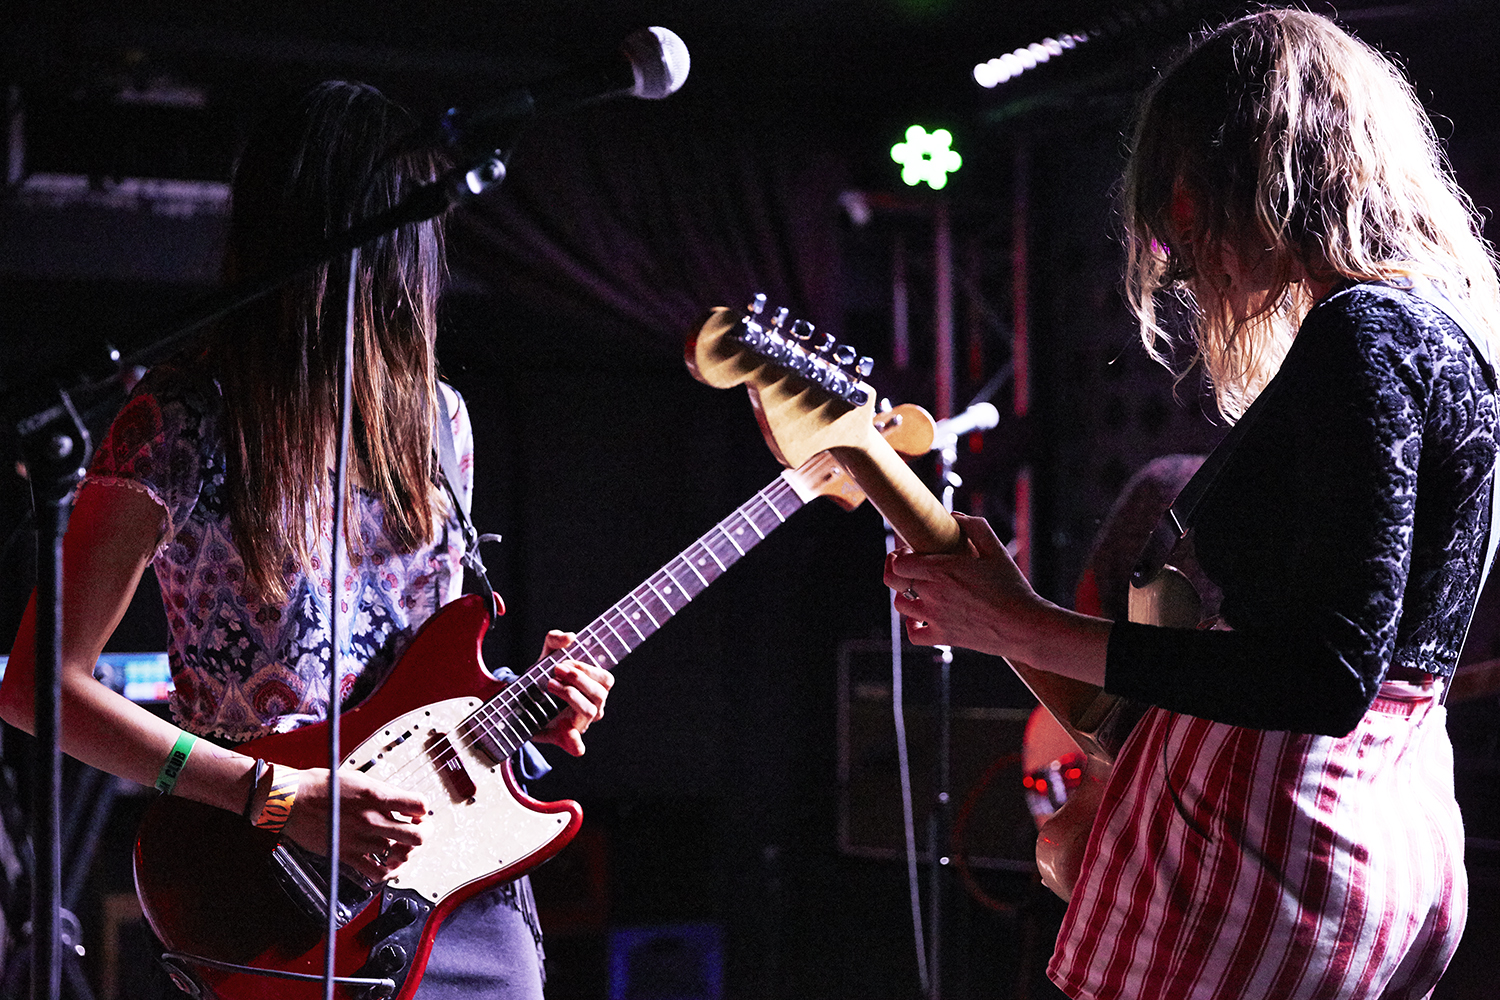 16_07_25_Warpaint_Brooklyn_0082F.jpg